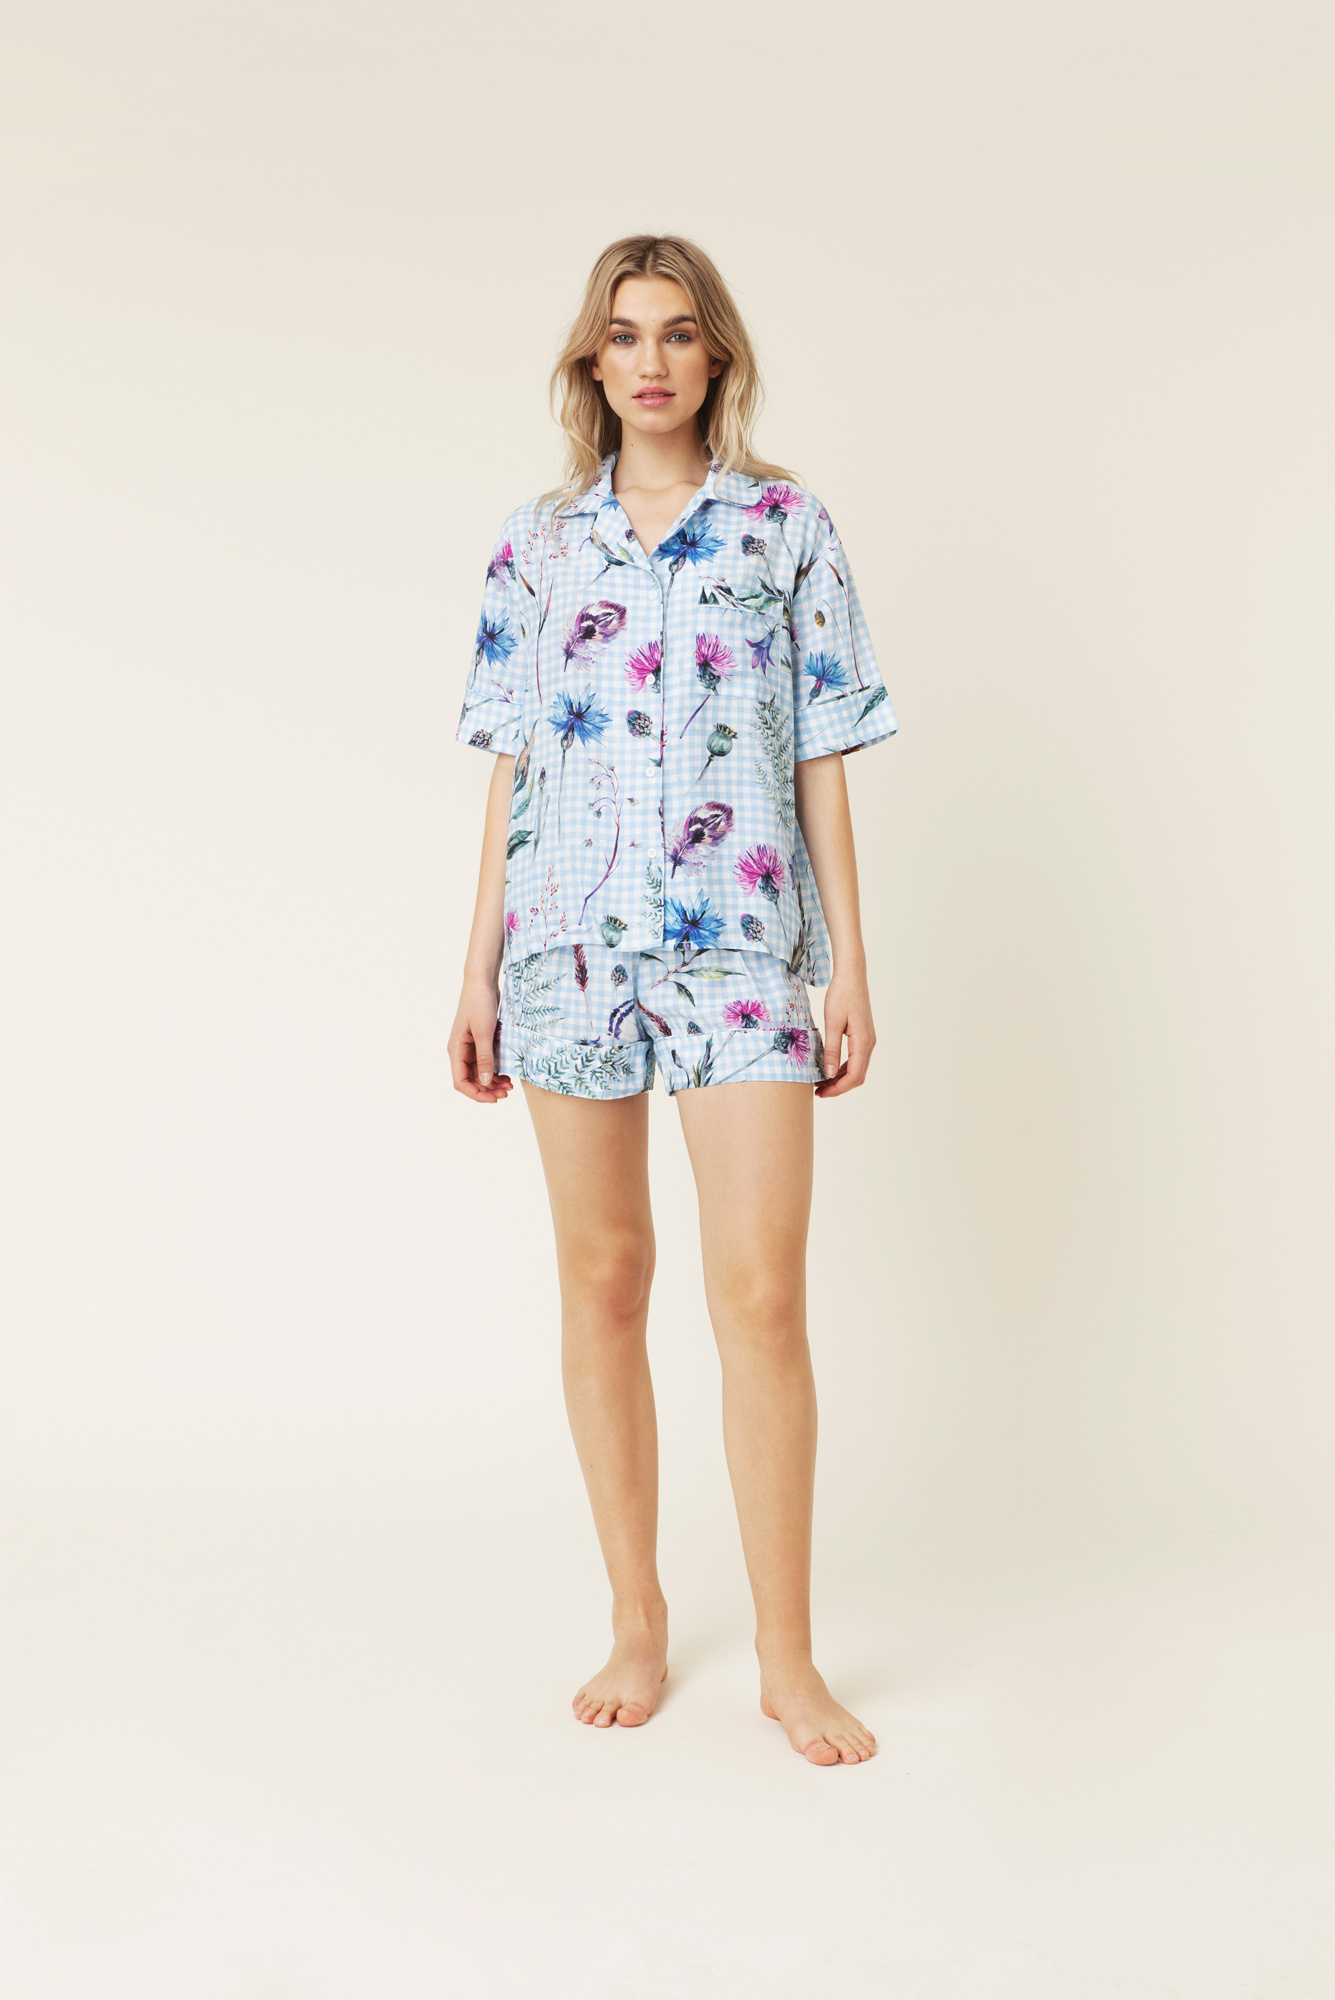 1c2eb9331554a Belle pyjama - By Malina Official